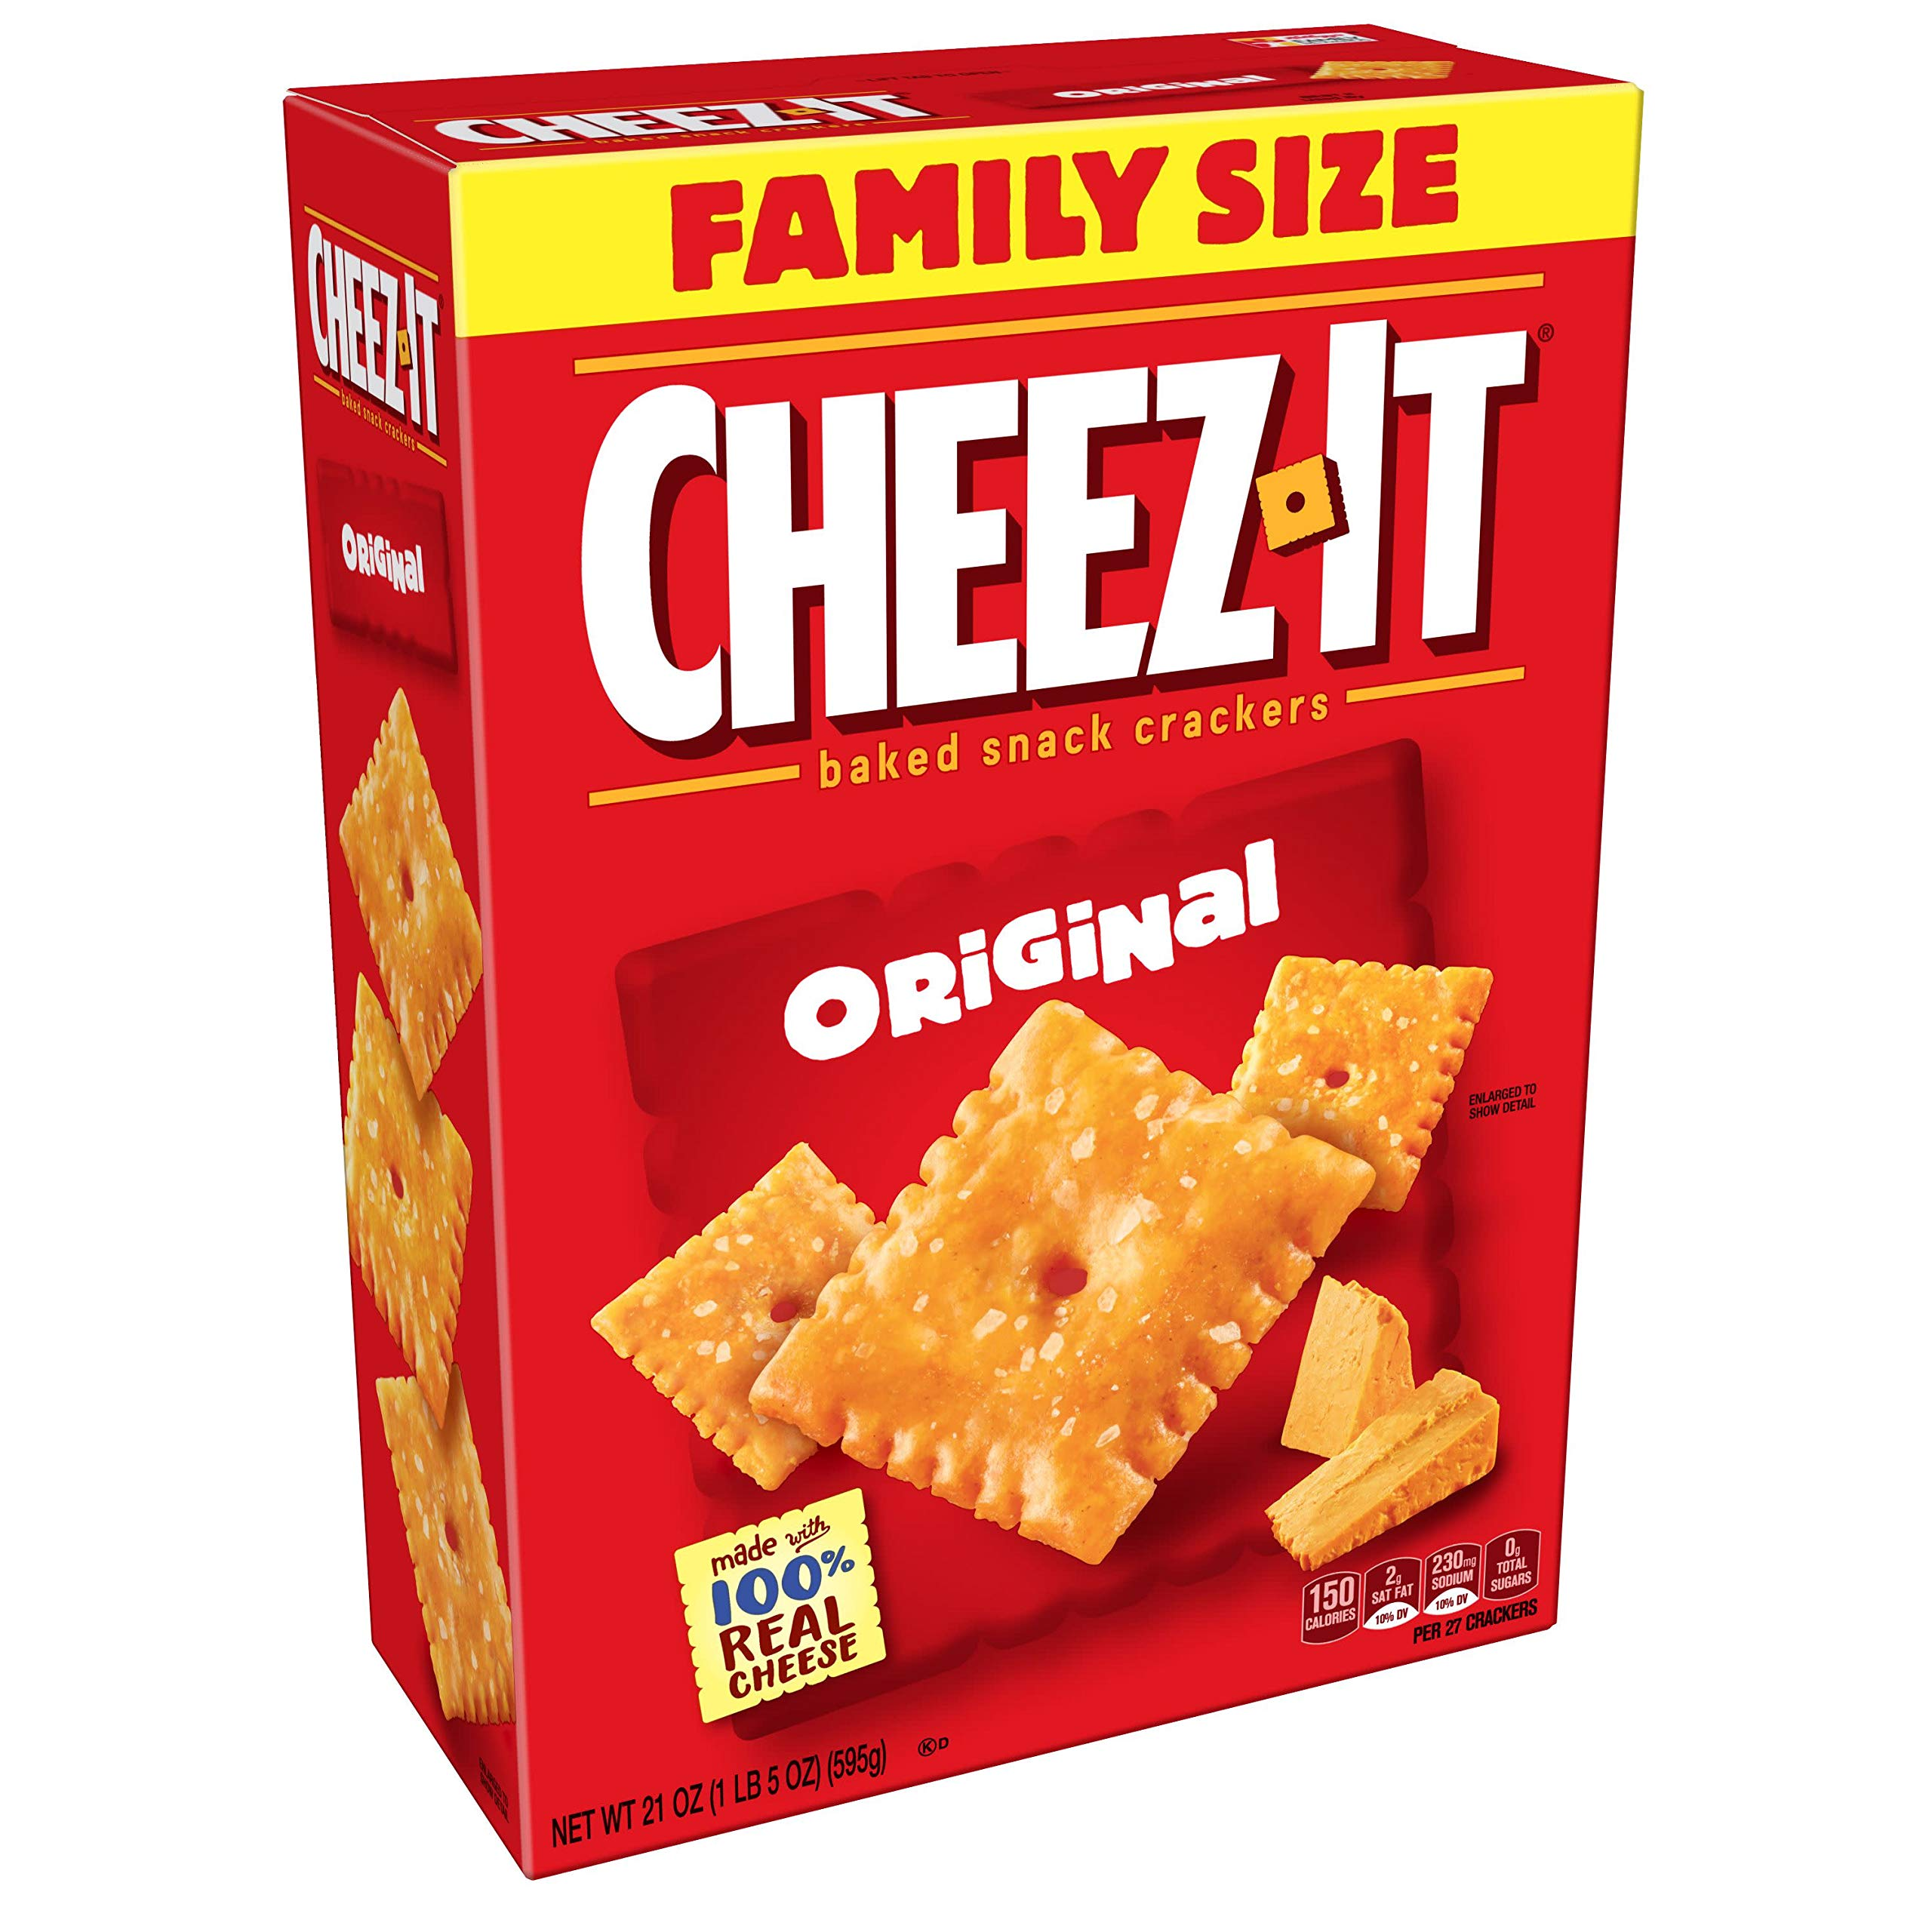 Cheez-It Baked Snack Cheese Crackers, Original, Family Size, 21 oz Box by Cheez-It